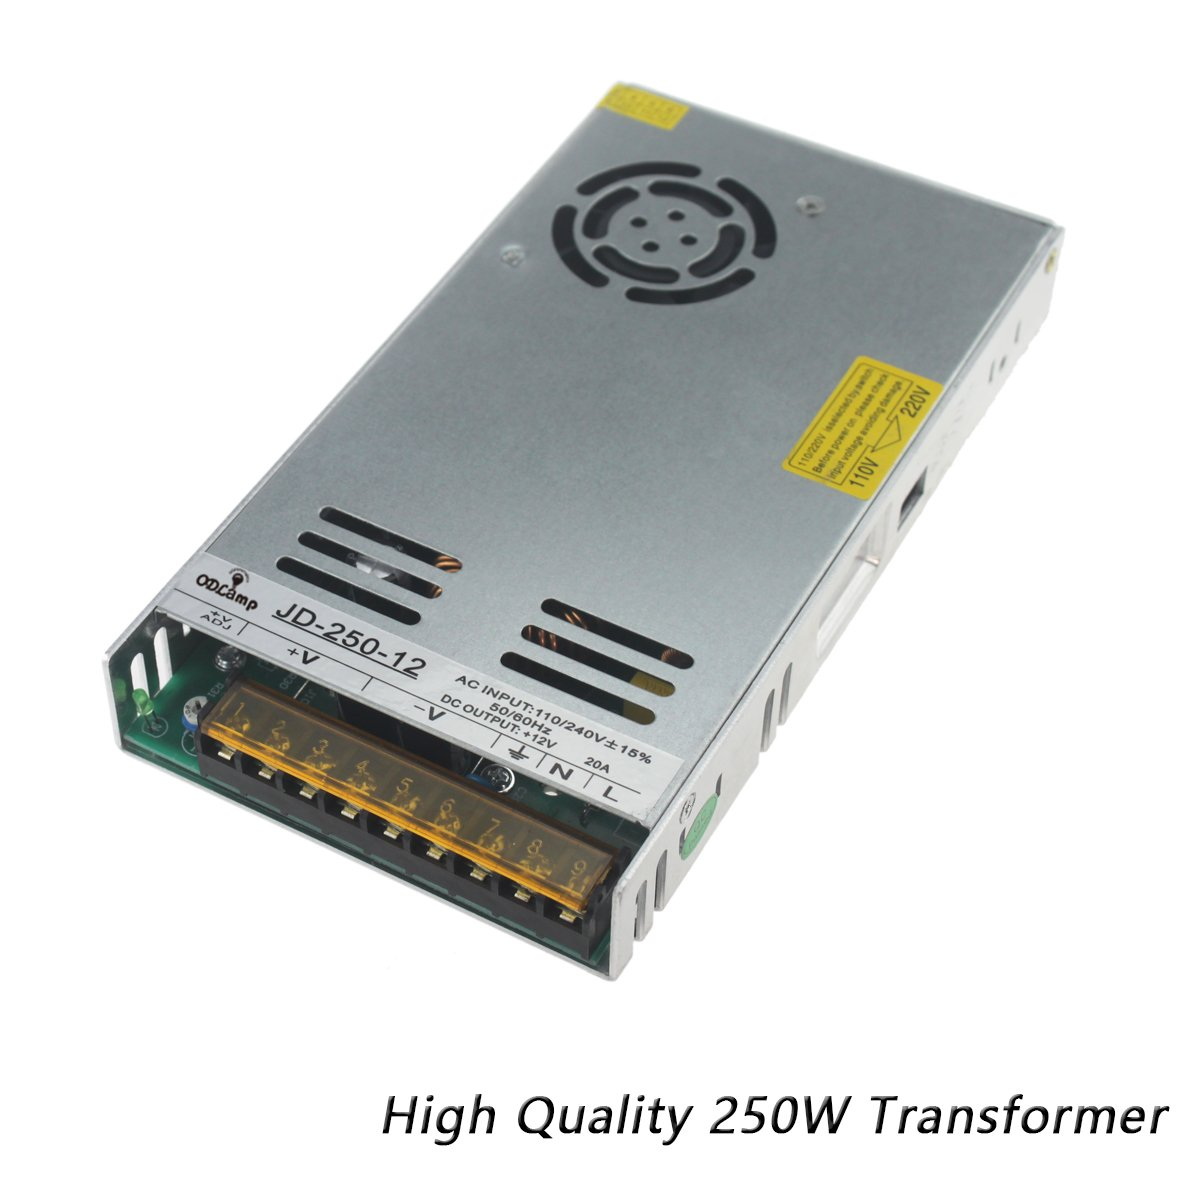 DC 12V 120W 250W 400W 500W Led Transformer Power Supply Driver Constant Voltage LED For Led Strip Led Module Lights (250W) by odlamp (Image #1)